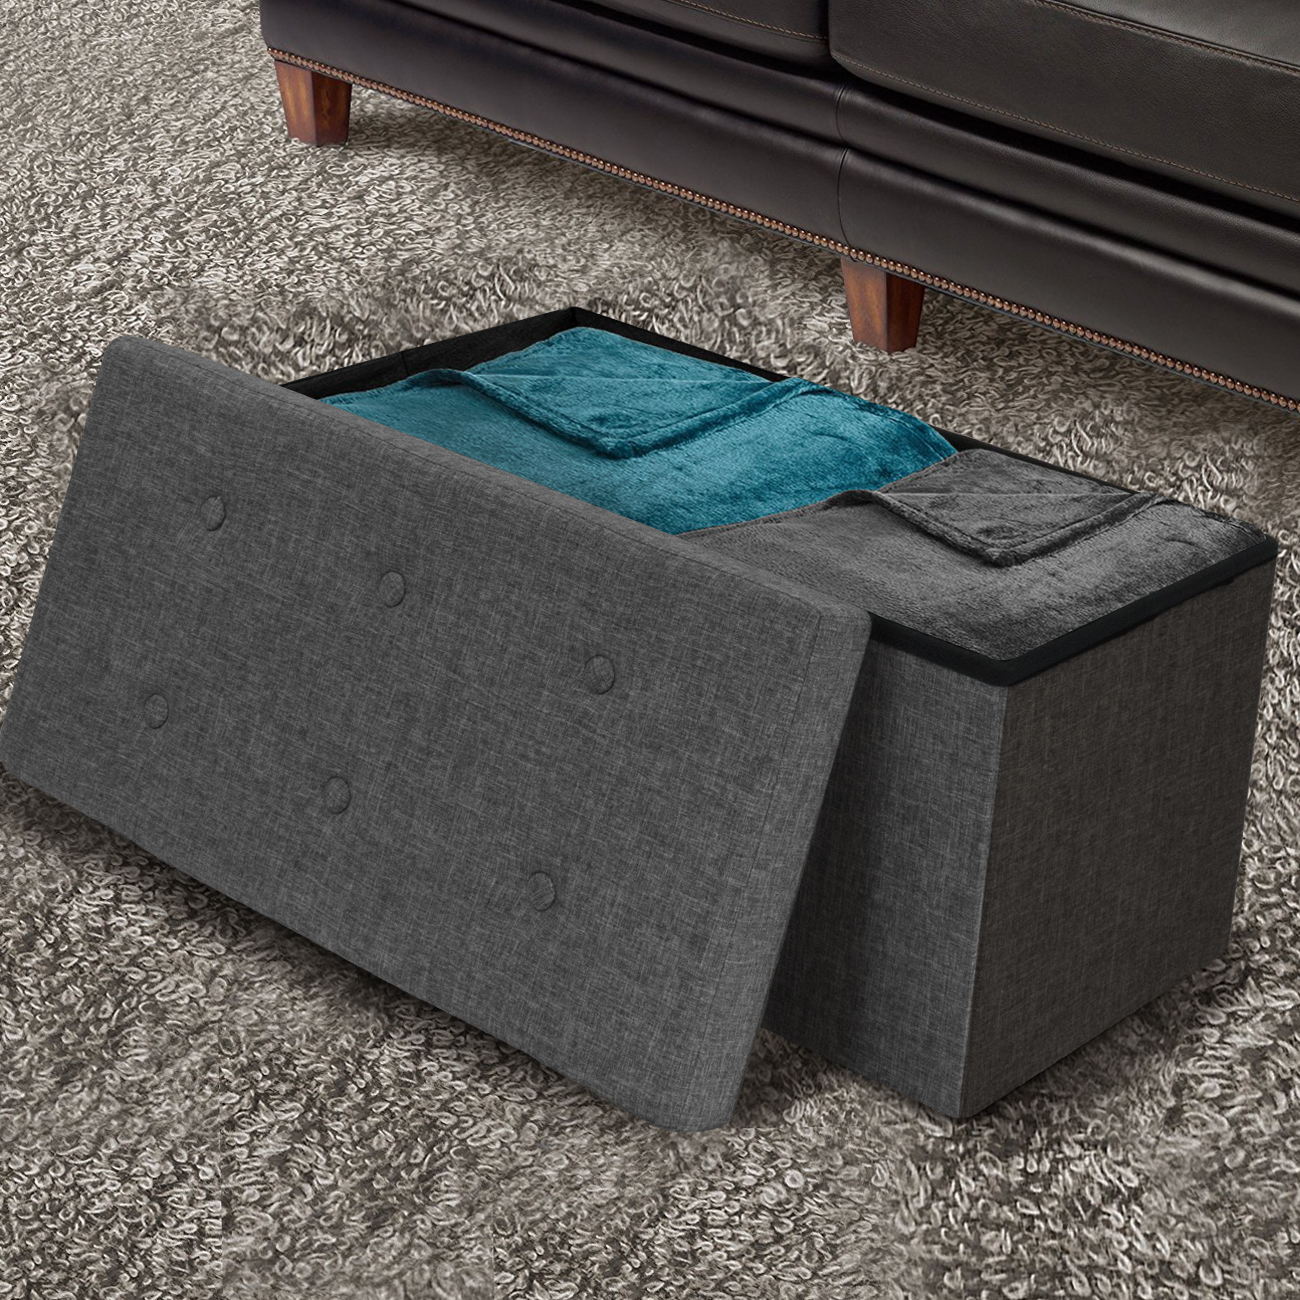 Sorbus Storage Ottoman Bench – Collapsible/Folding Bench Chest with Cover – Perfect Toy and Shoe Chest, Hope Chest, Pouffe Ottoman, Seat, Foot Rest, – Contemporary Faux Linen (Medium, Gray)